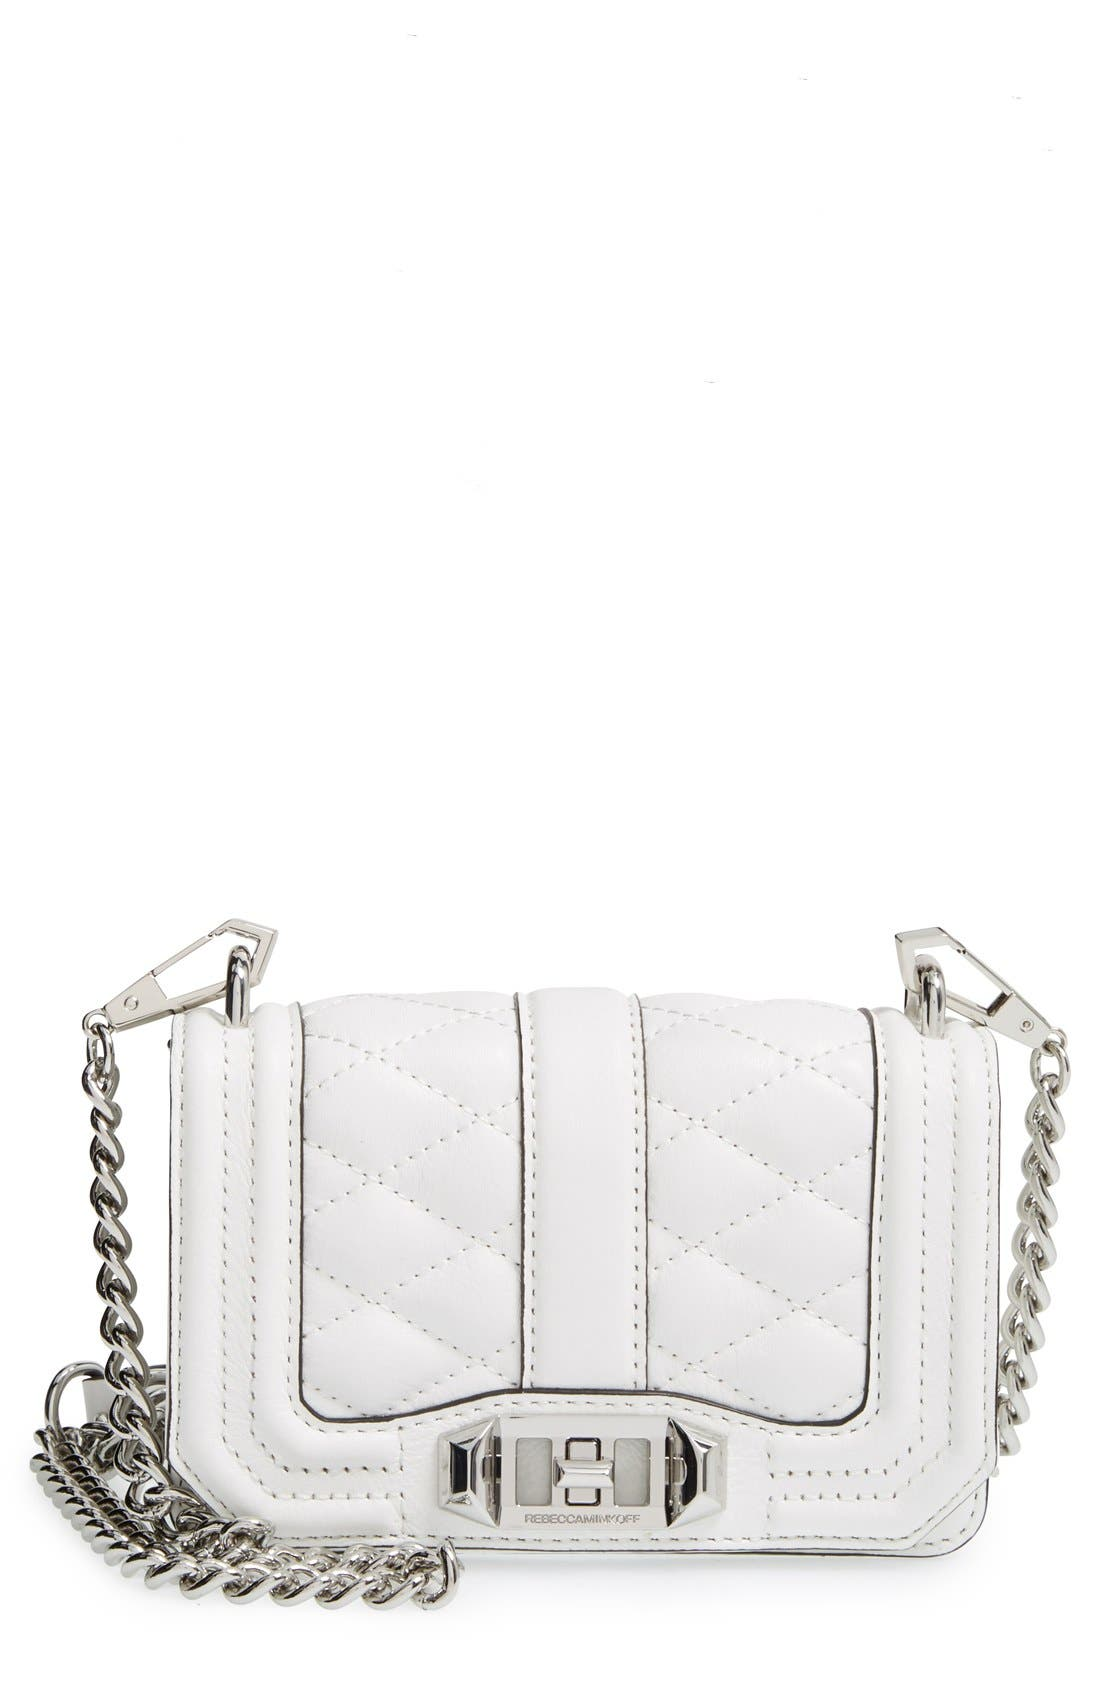 Main Image - Rebecca Minkoff 'Mini Love' Convertible Crossbody Bag